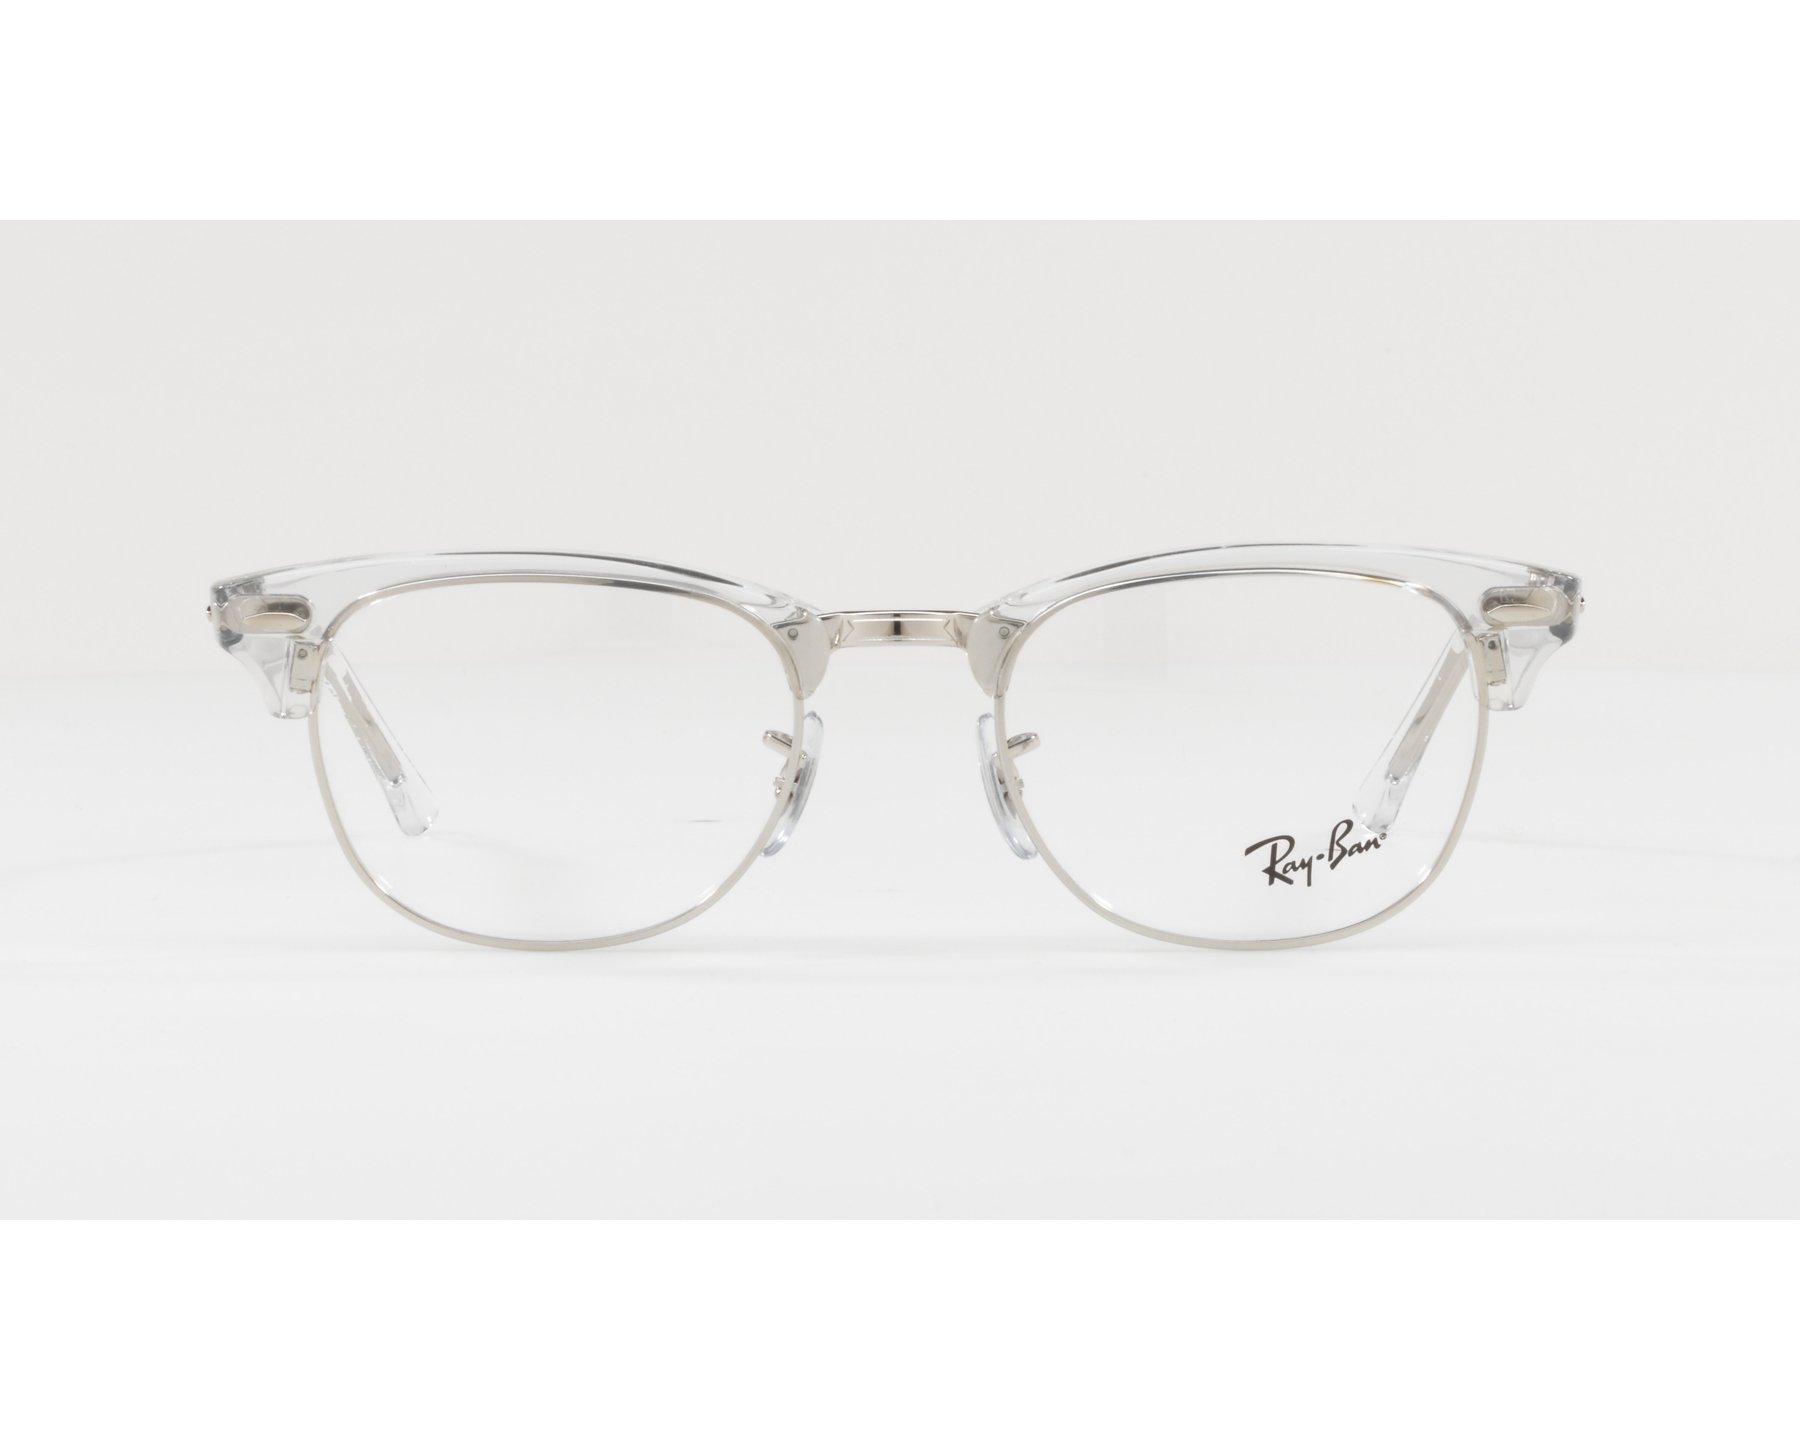 eyeglasses Ray-Ban RX-5154 2001 49-21 Crystal Silver 360 degree view d0052879f277